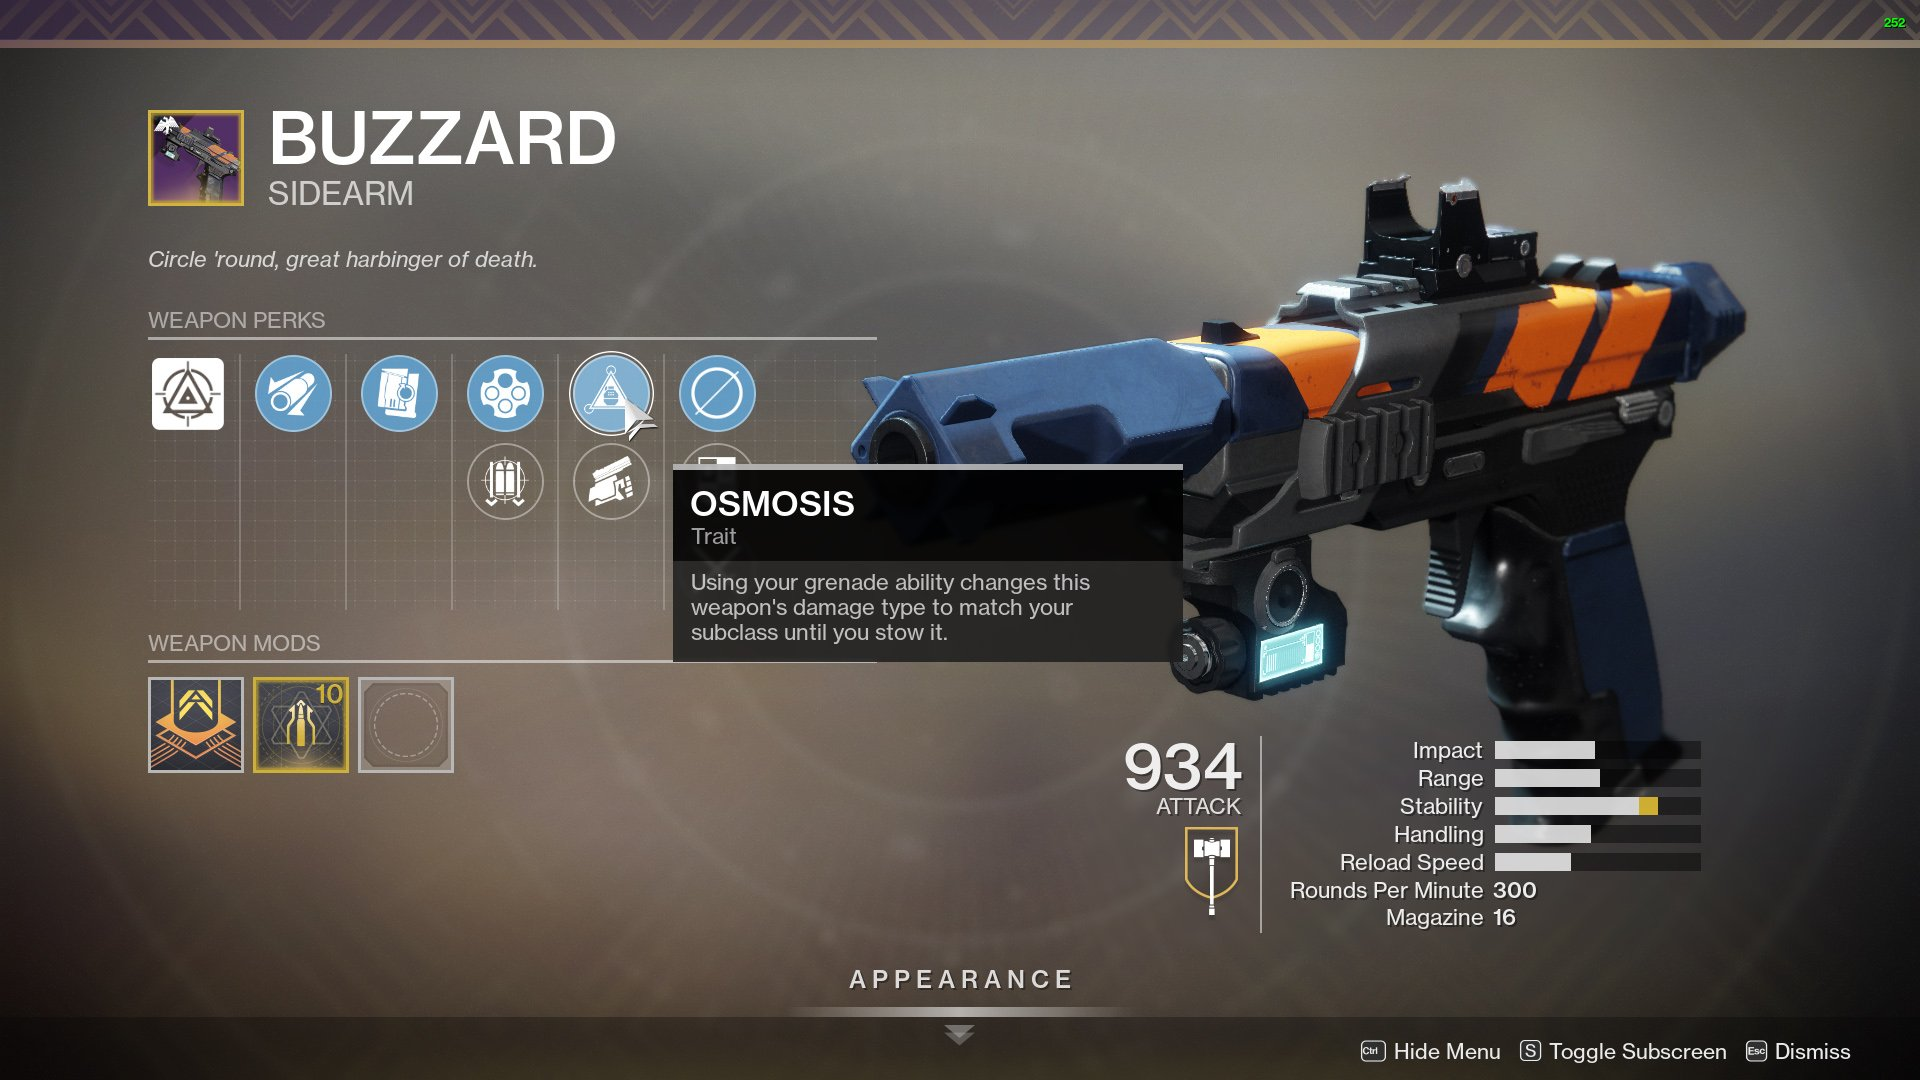 Destiny 2 buzzard perks